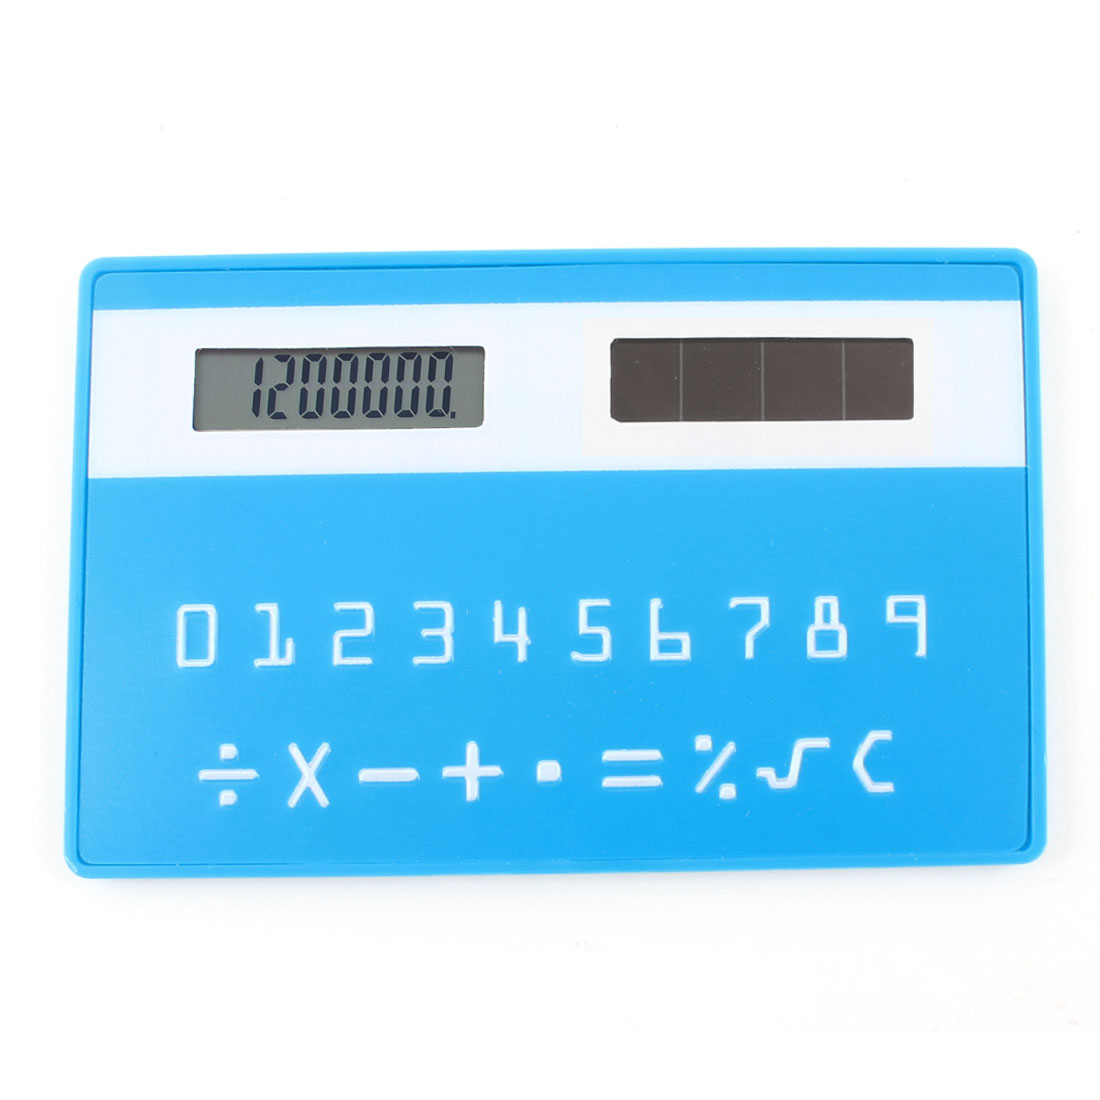 Teal Blue Plastic Card Style 8 Digital LCD Display Solar Power Pocket Calculator